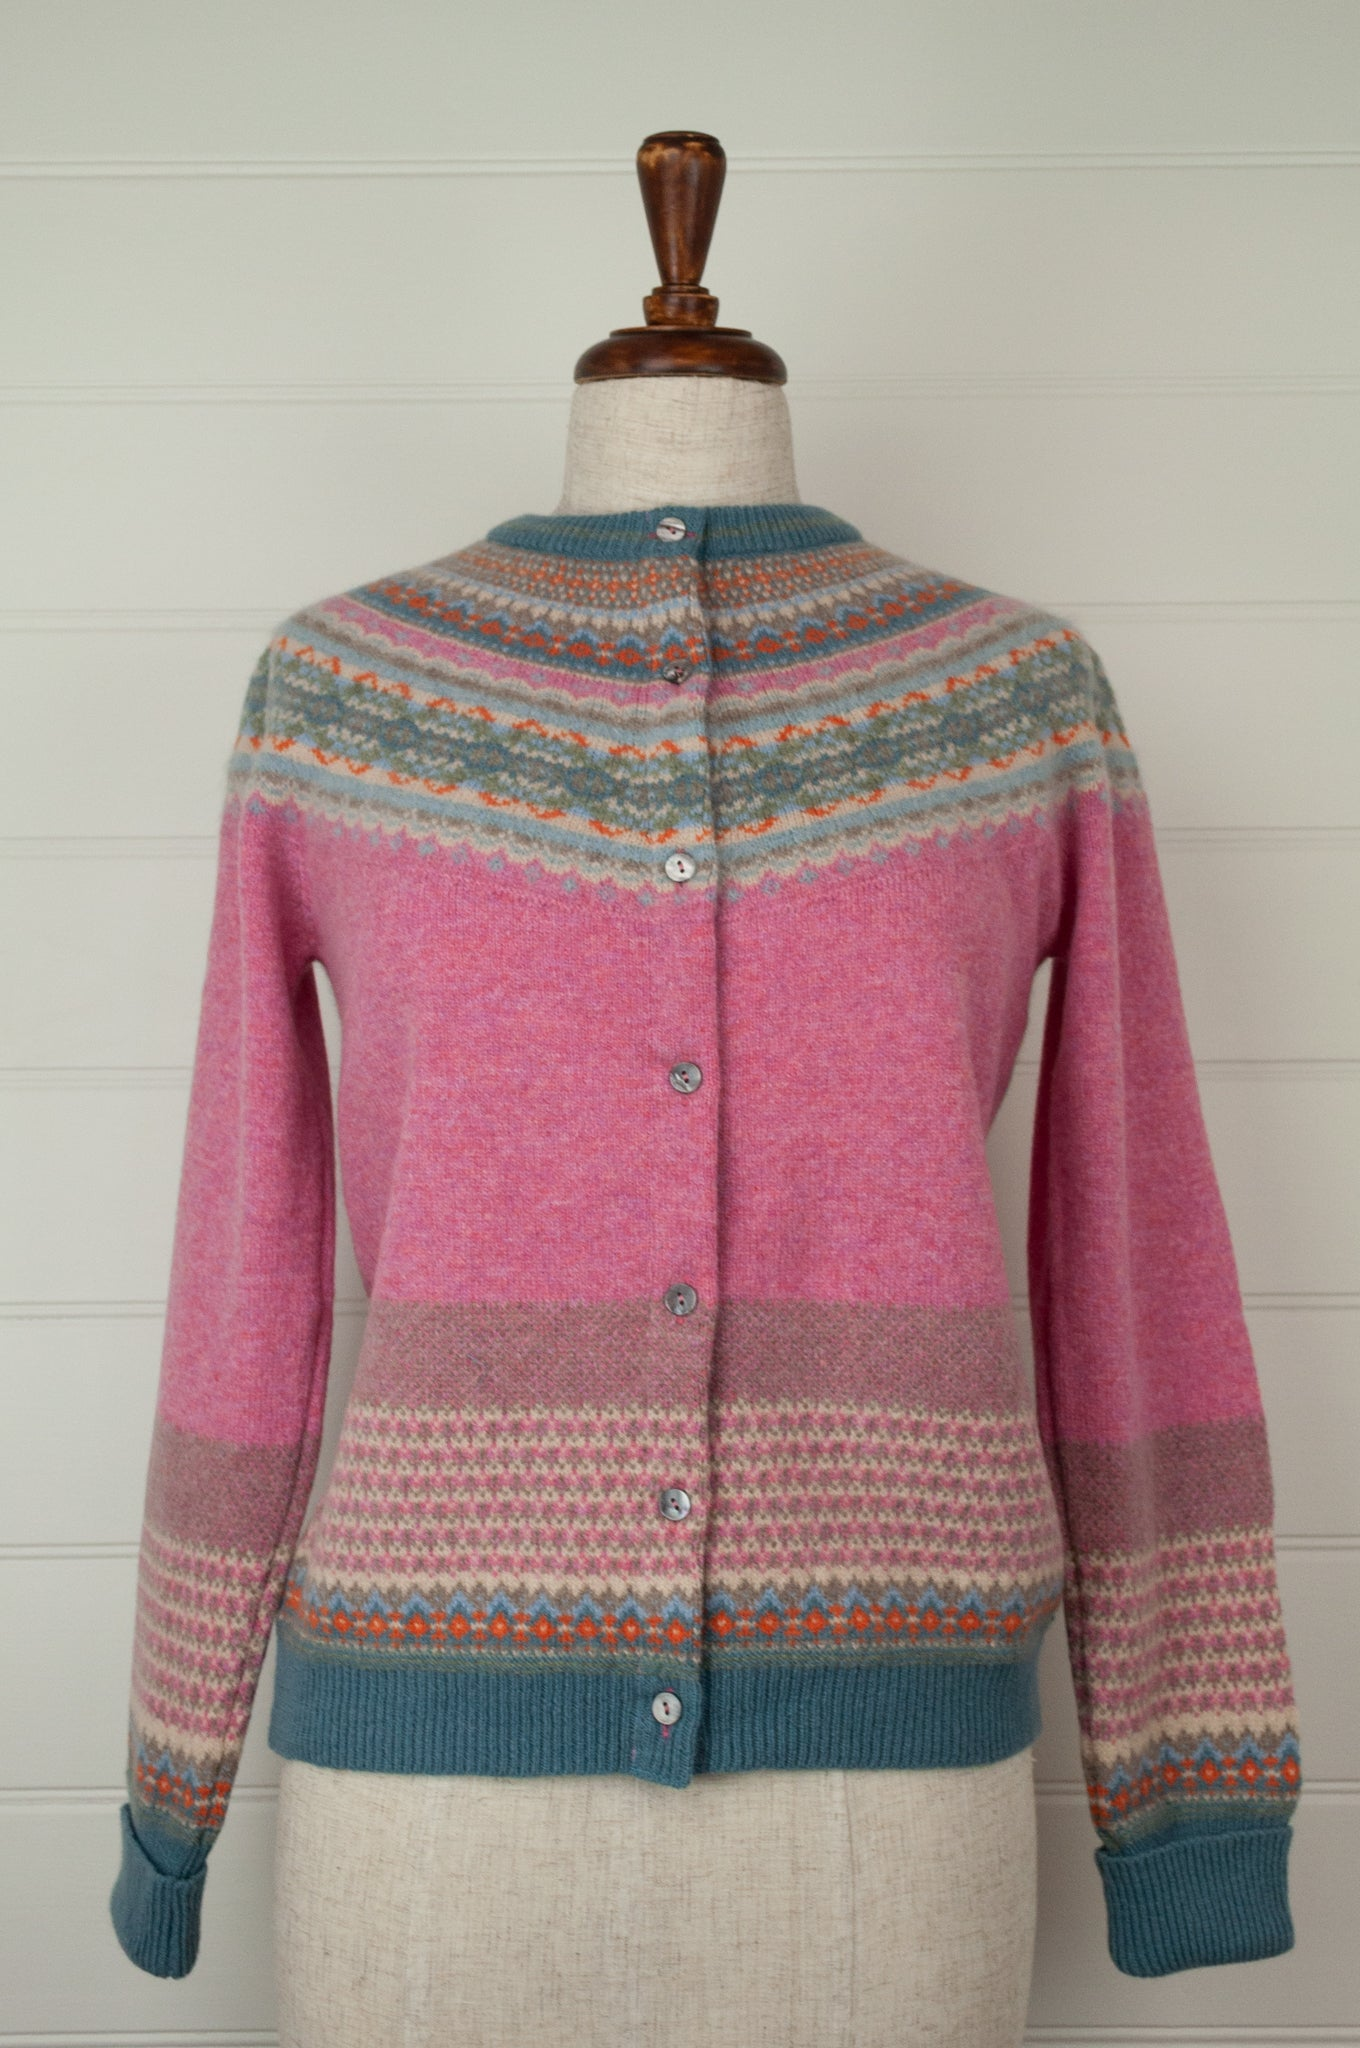 Made in Scotland, Eribé pure wool fairisle cardigan in Nougat, lolly pink with patterned yoke and trim in shades of light denim blue, orange, ecru and stone grey.